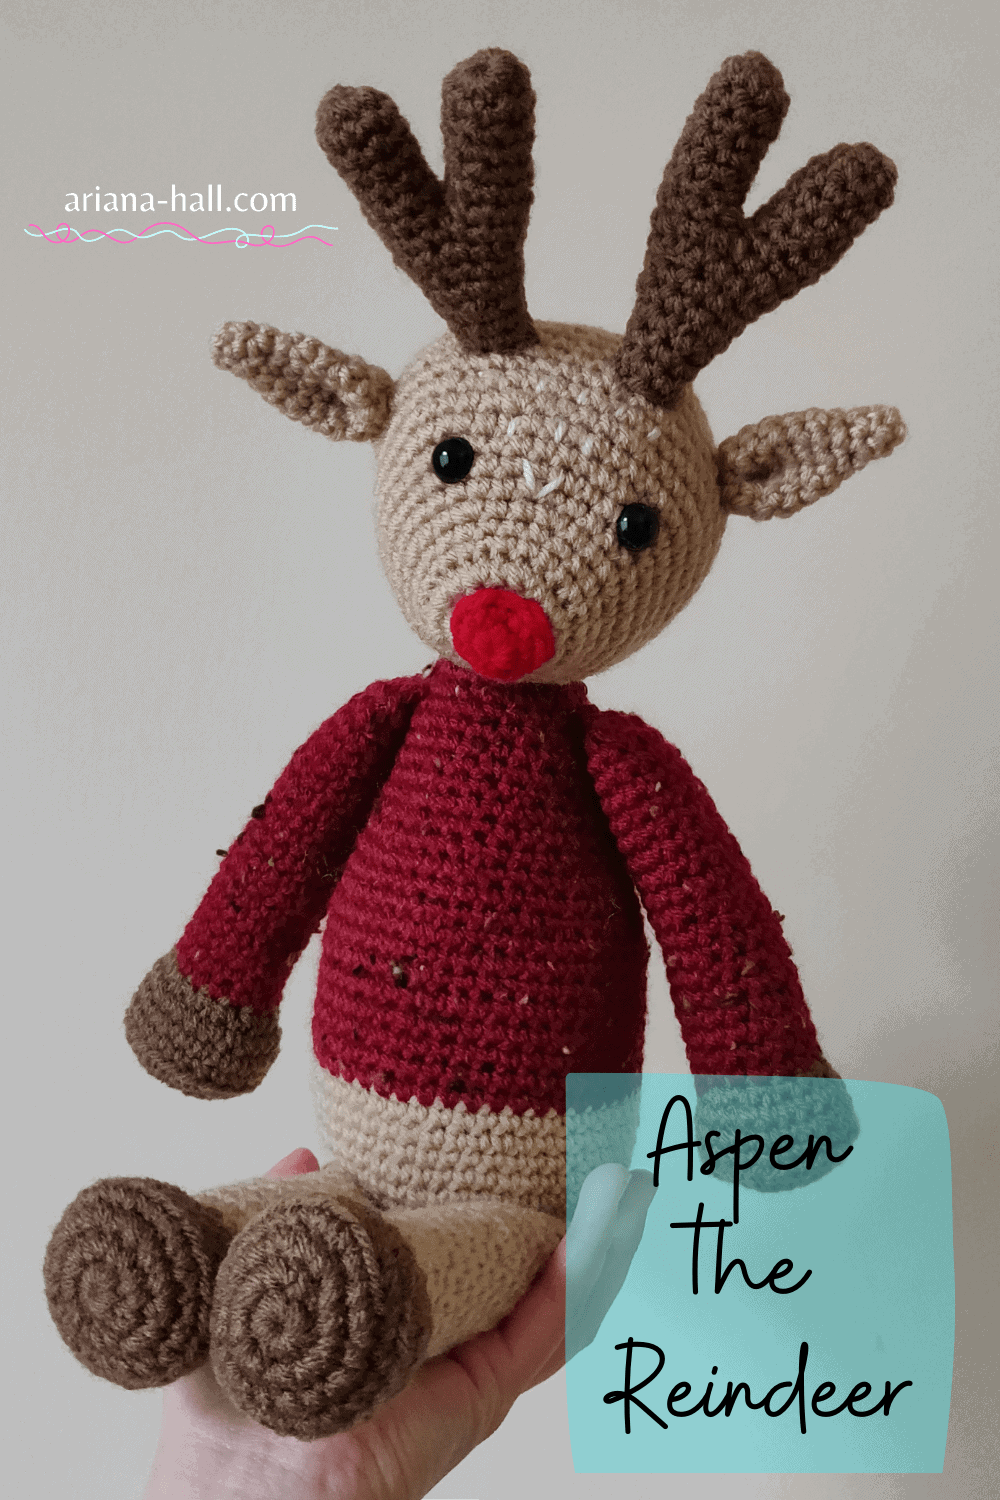 Crochet reindeer inspired by rudolph in a red sweater.